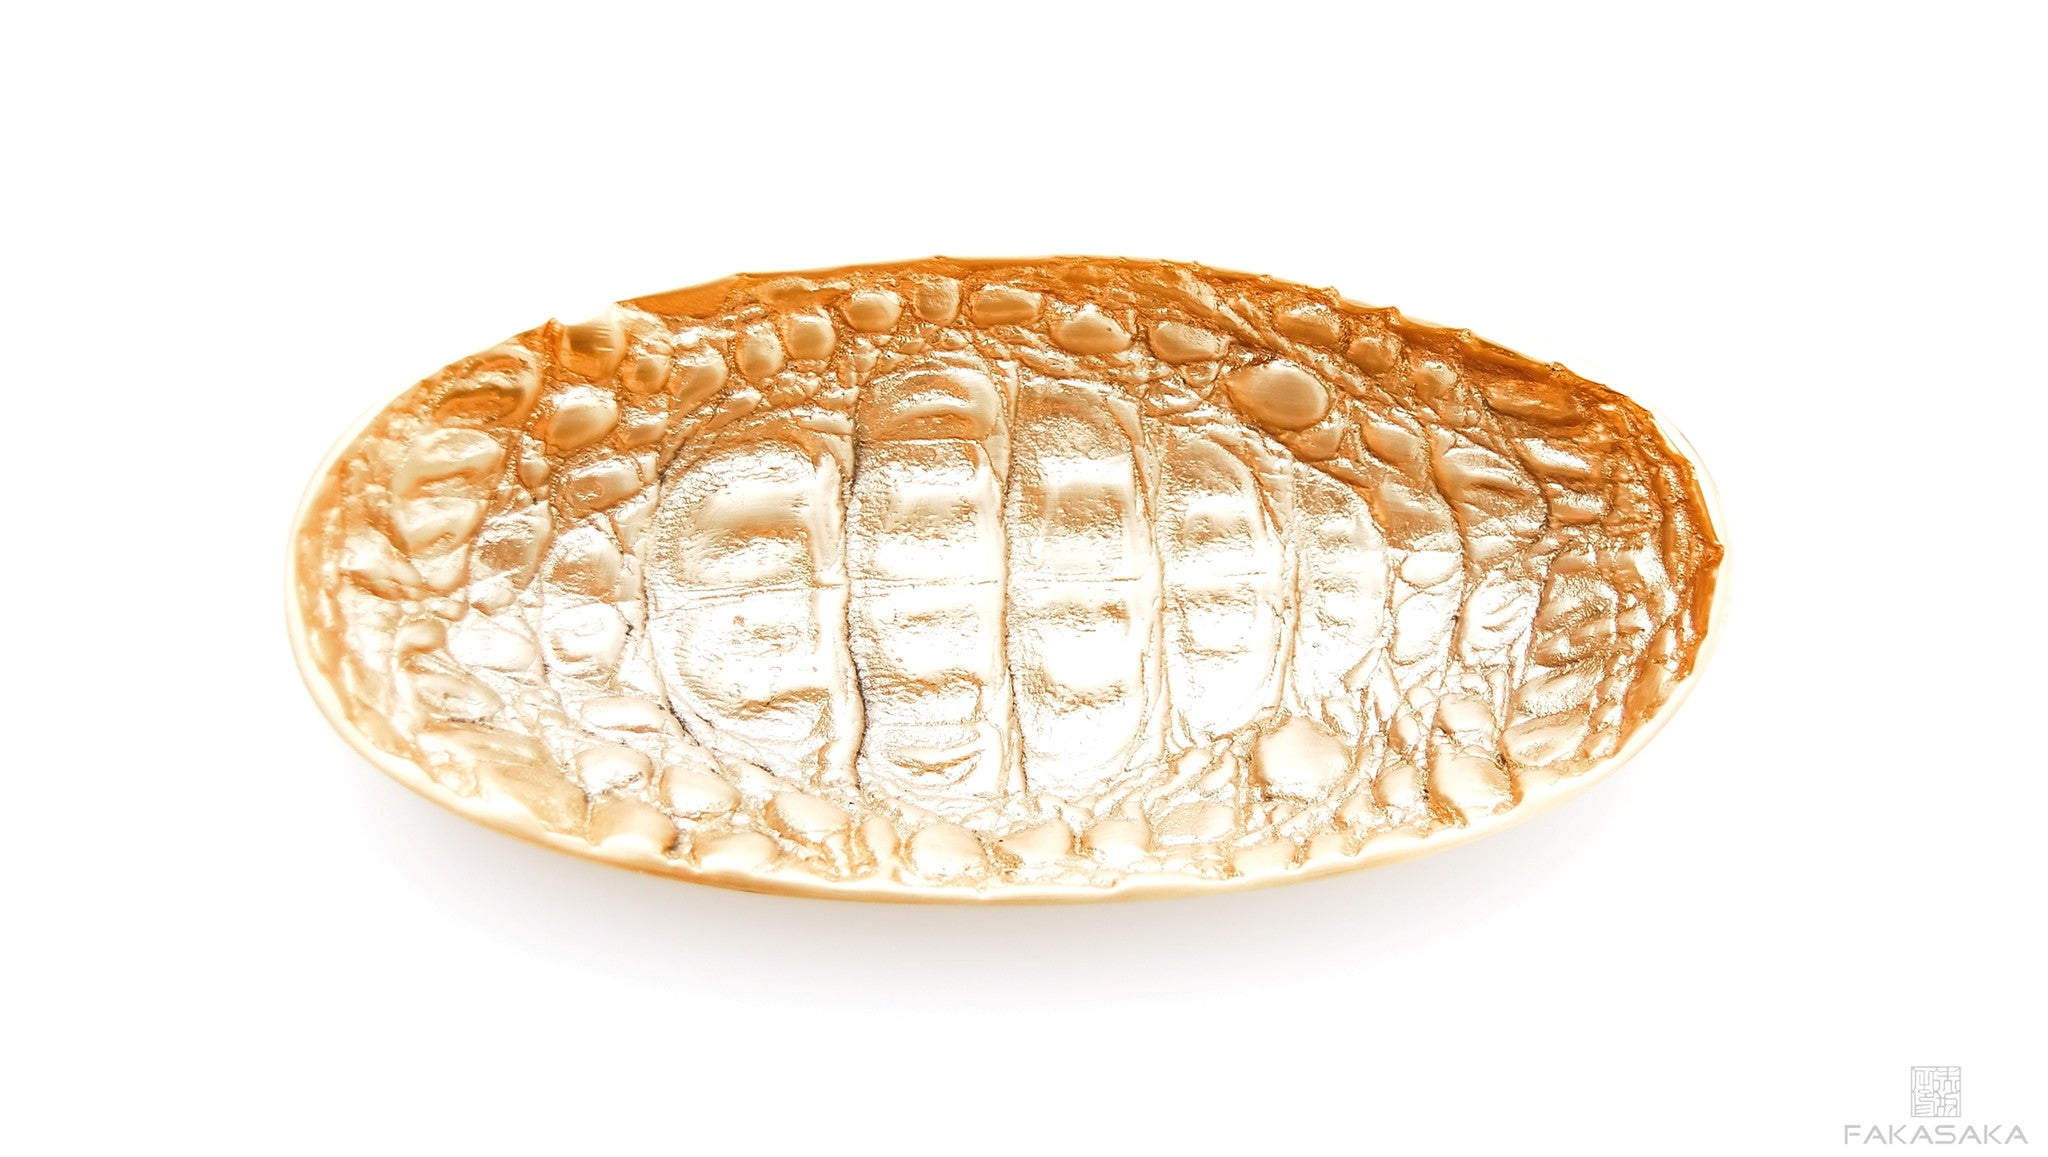 POLLY JEAN SMALL TRAY <br><br> GOLD PLATED BRONZE